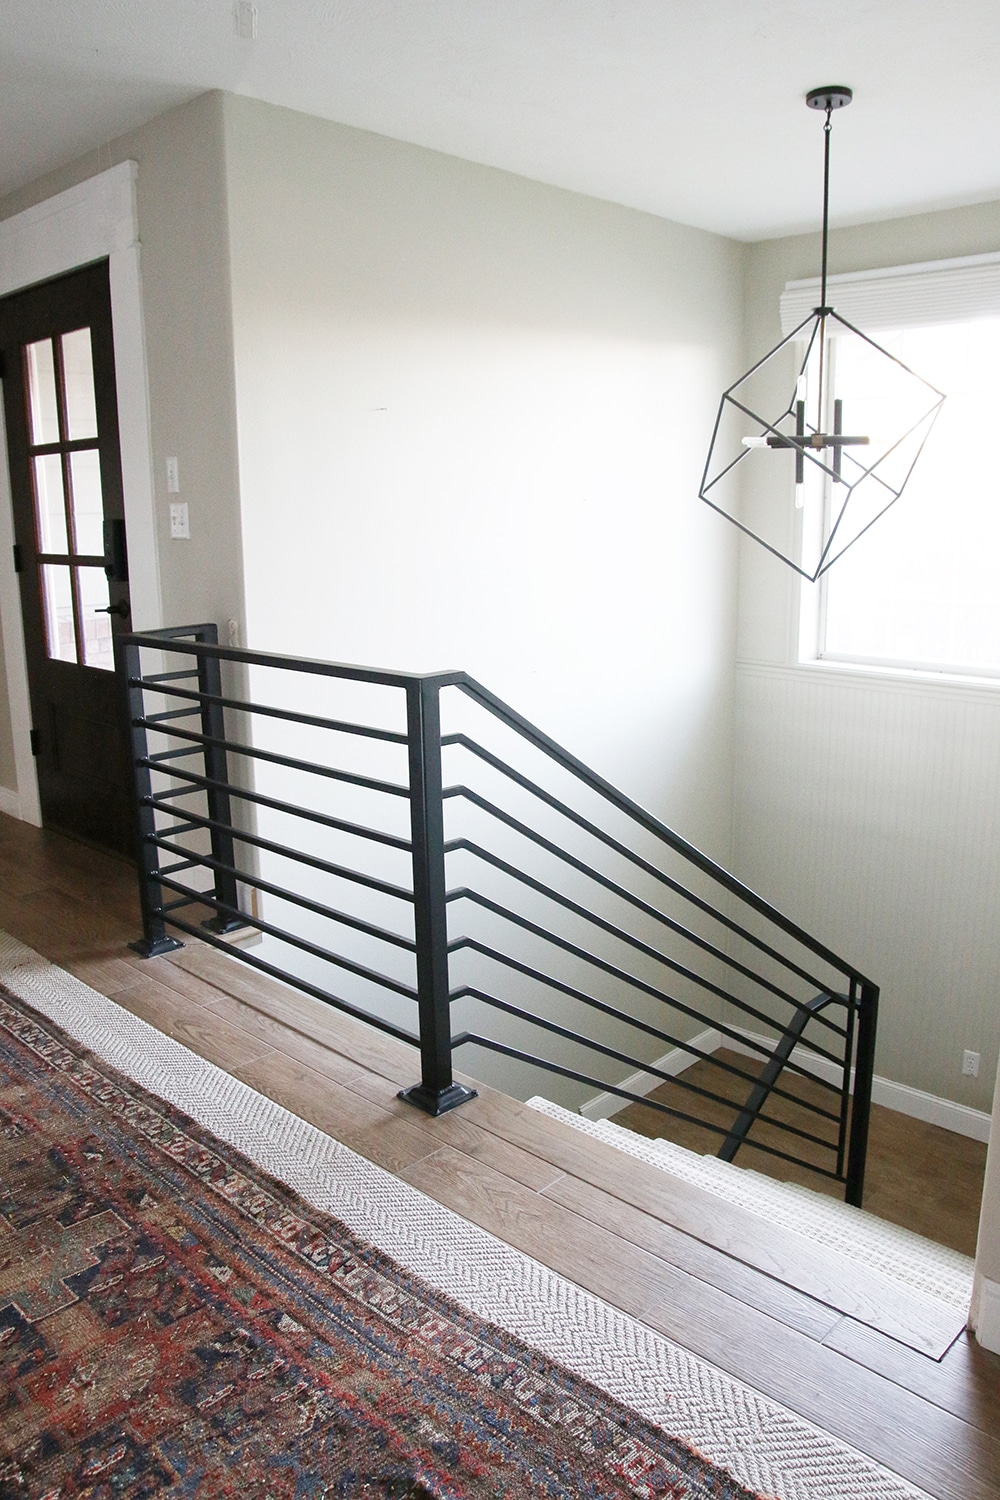 The Fabrication And Installation Of The Stair Railing Only Cost Us 1500 And It Changed Our